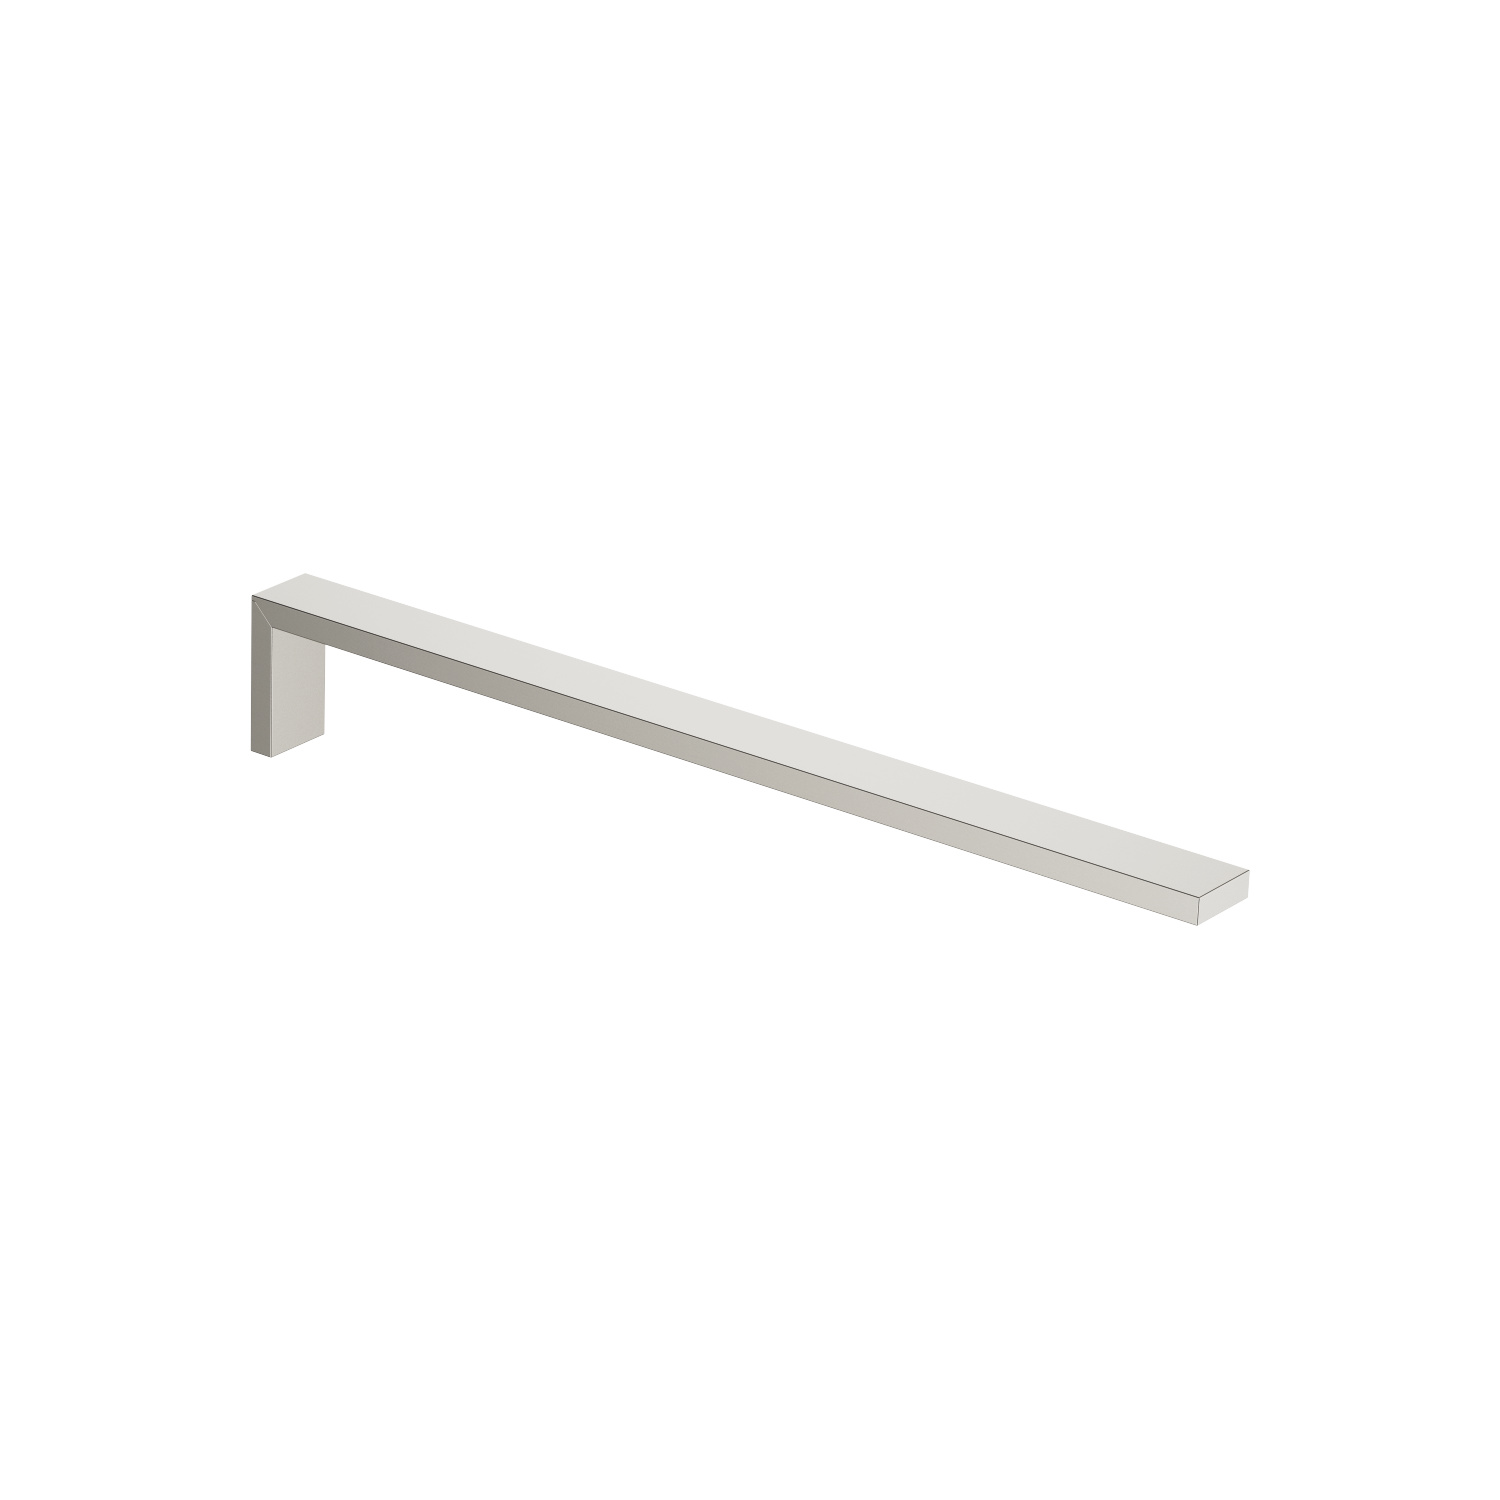 Towel bar 1-piece non-swivel - platinum matt